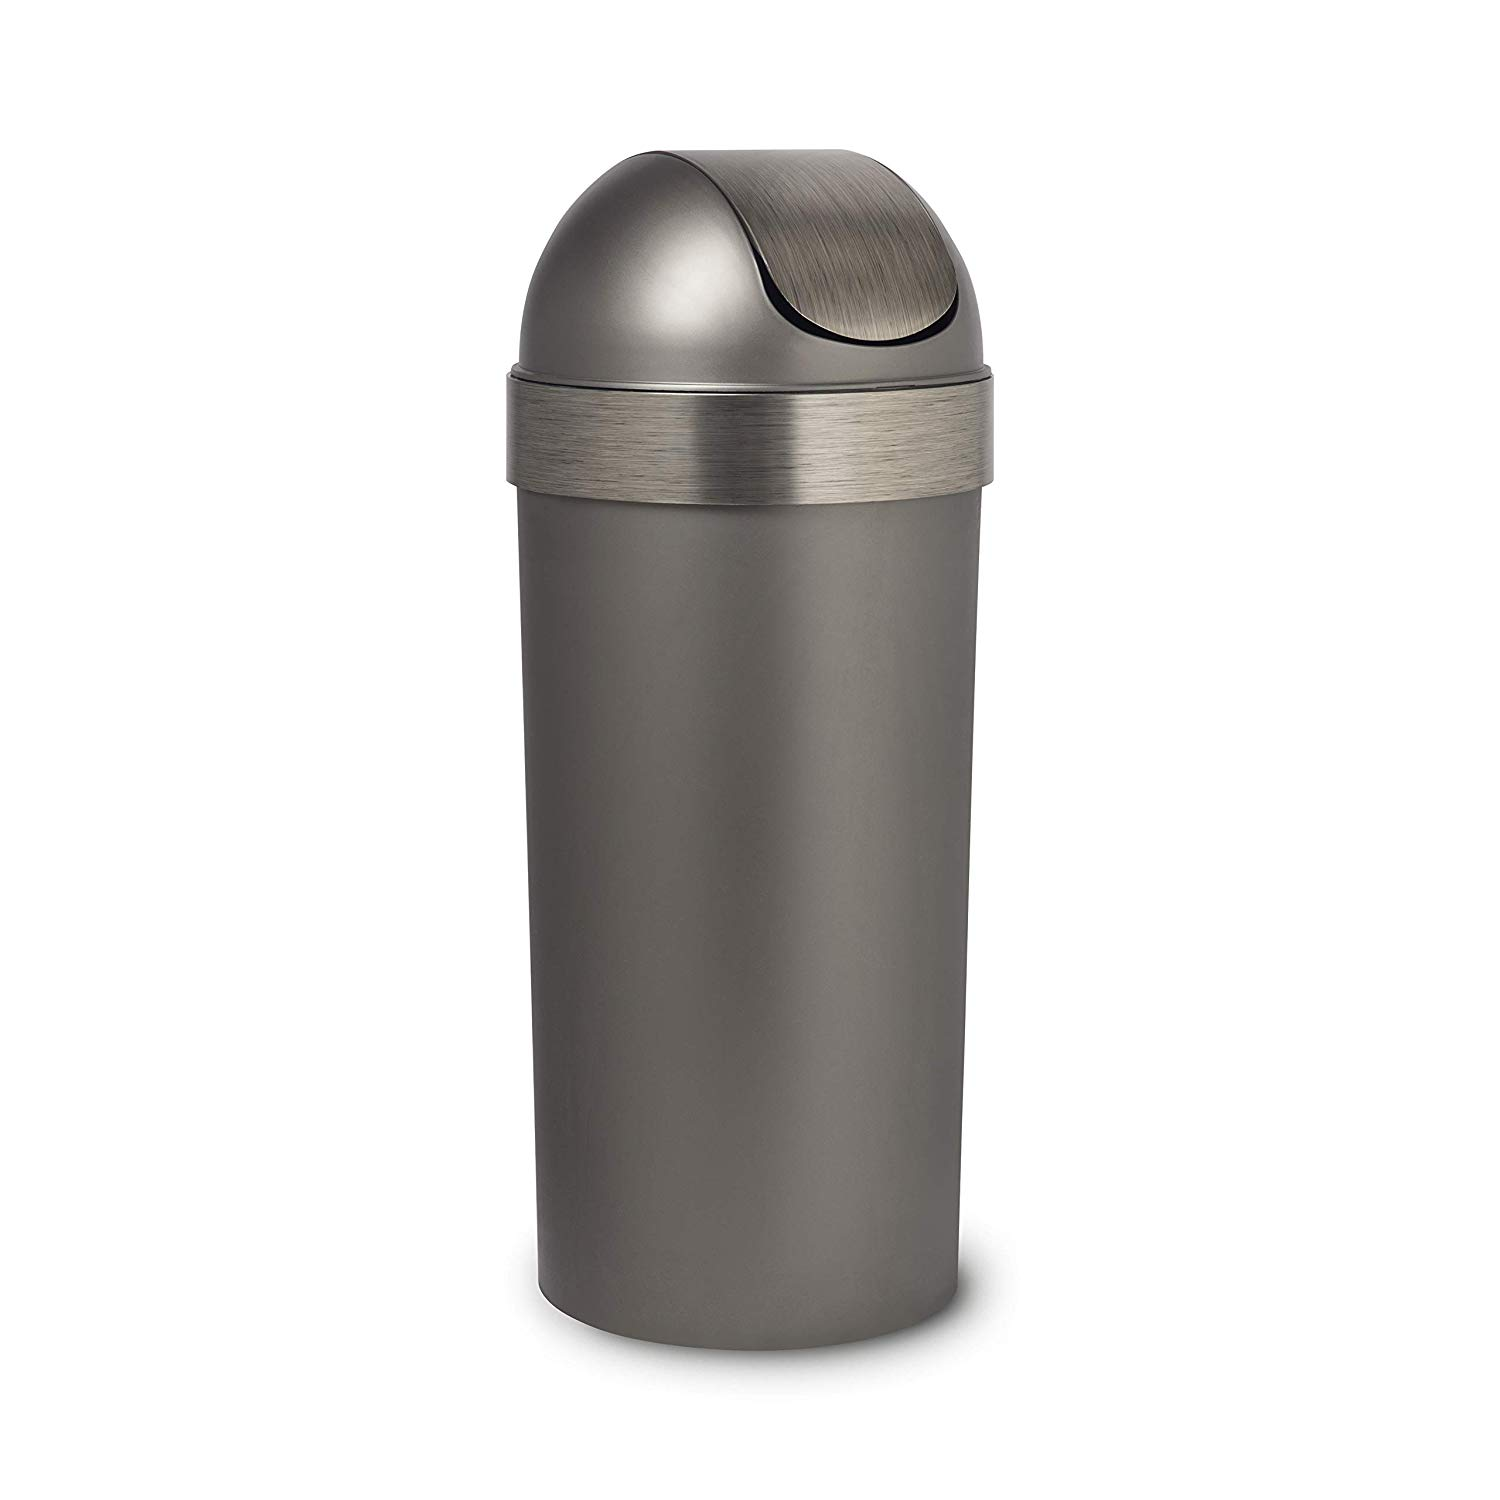 the best outdoor trash can may 2021